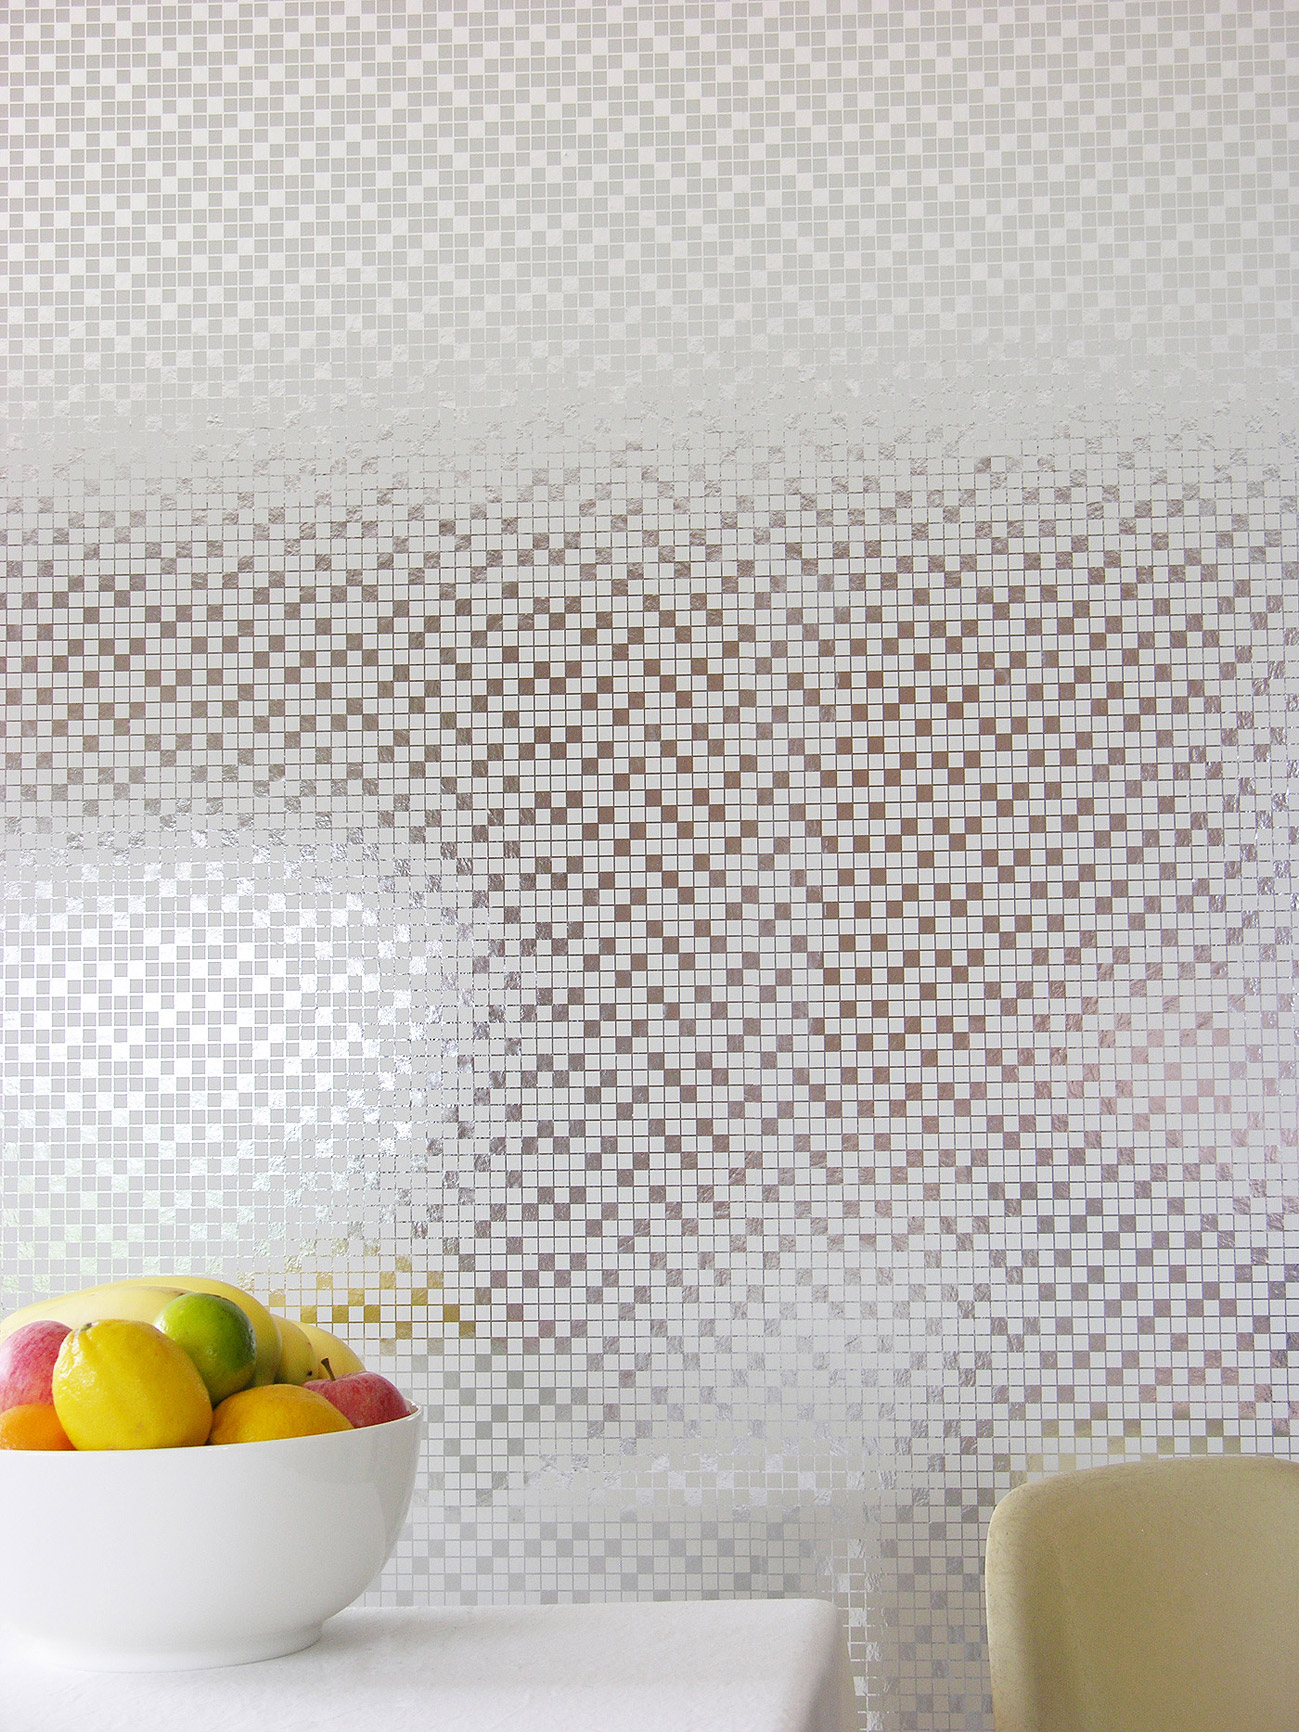 Silver Metallic Wallpaper Bedroom White And Silver Metallic Wallpaper Wallpapersafari